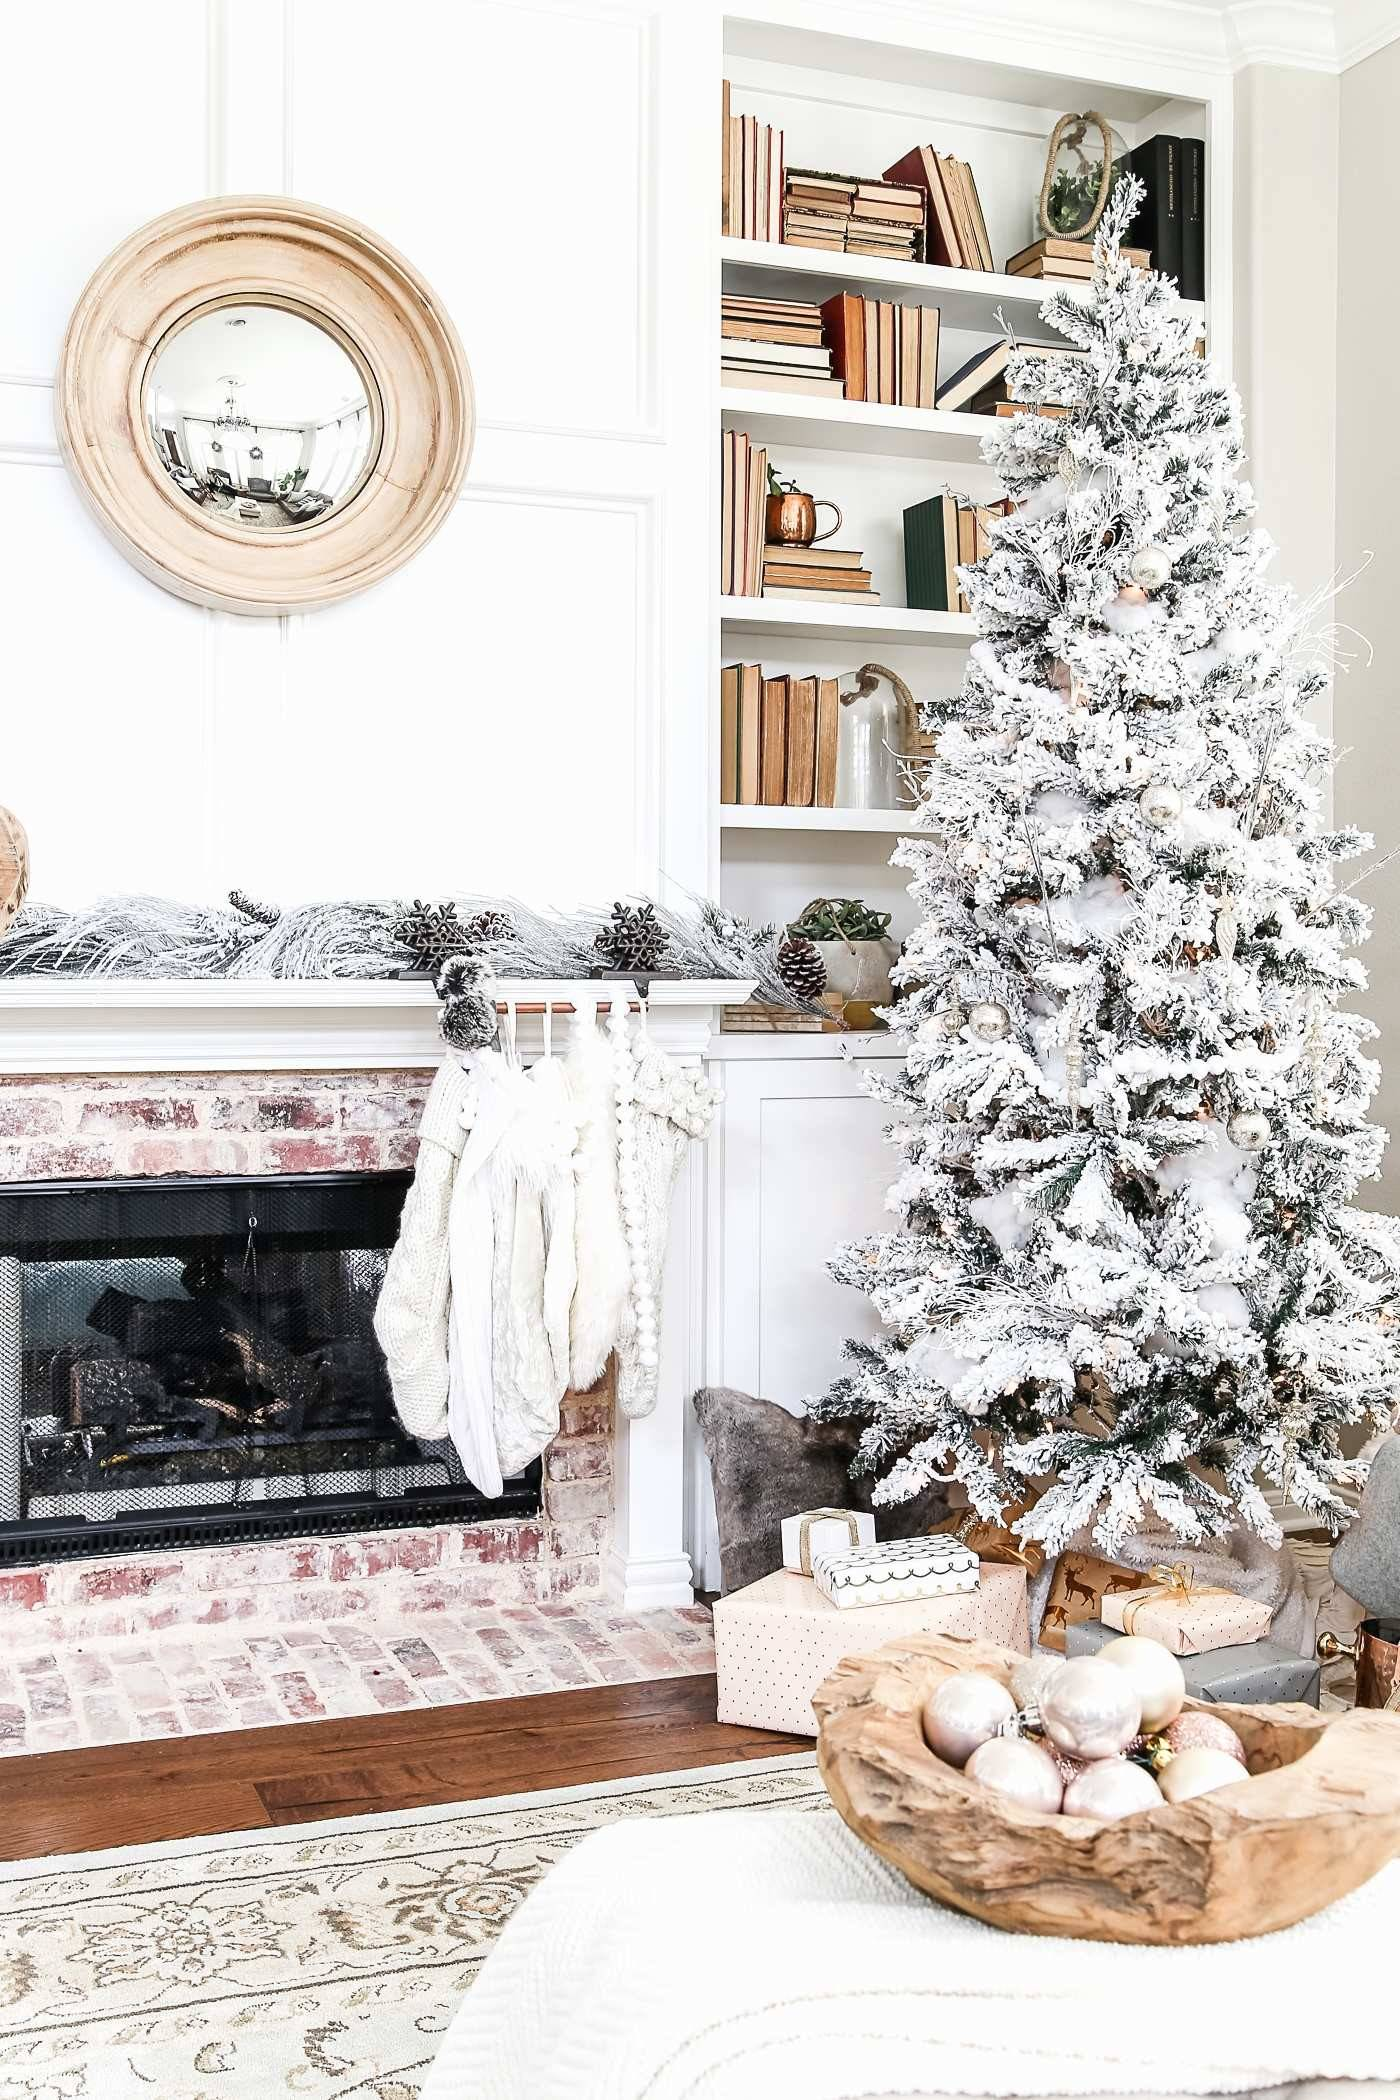 pictures of home interiors decorated for christmas christmas home decorating trend home decor mail order catalog best decor iron decor iron decor 0d